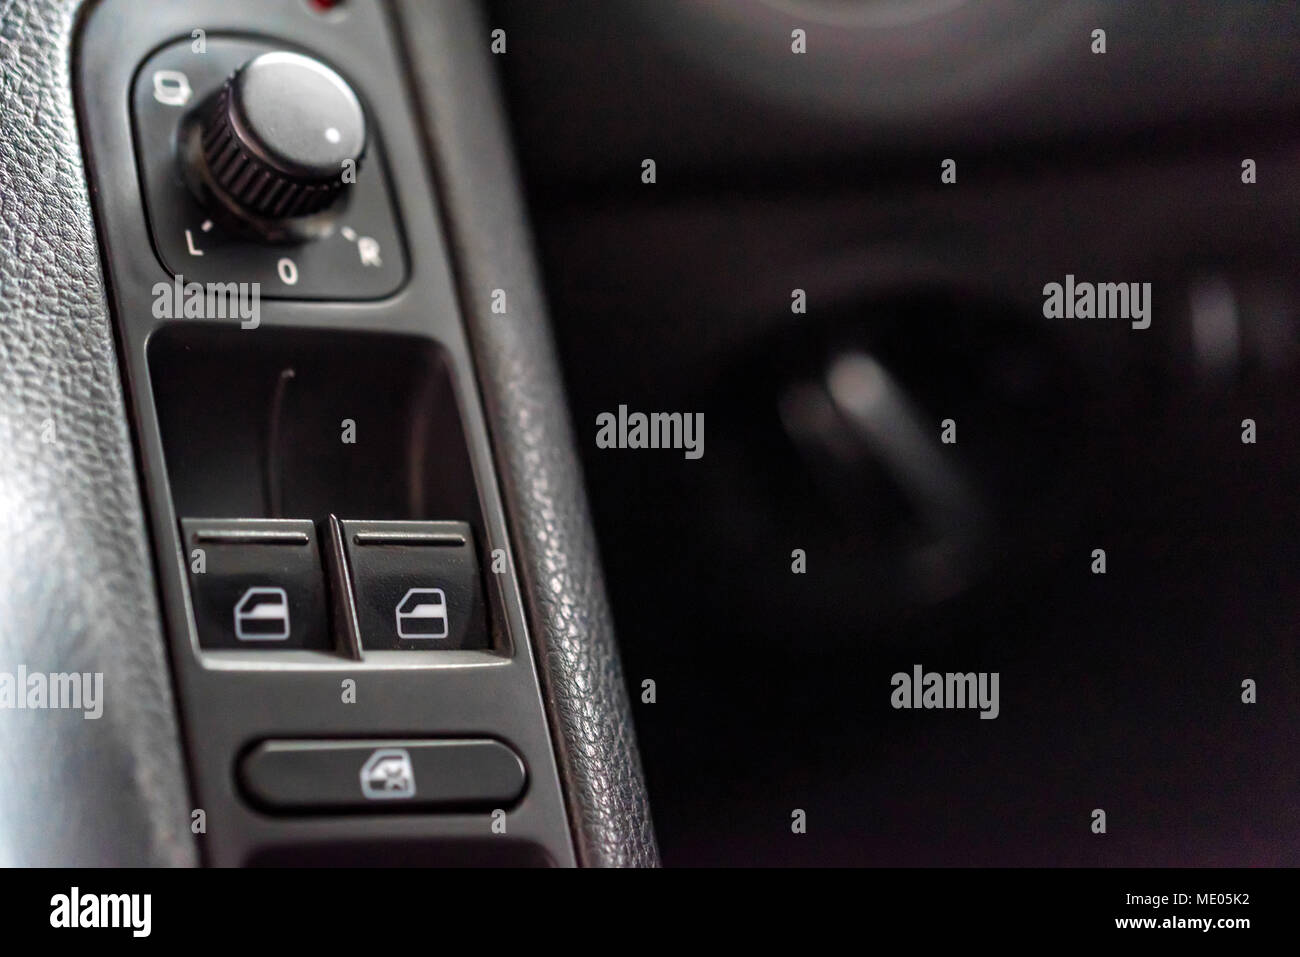 Window lifter and mirror adjustment buttons in car - Stock Image